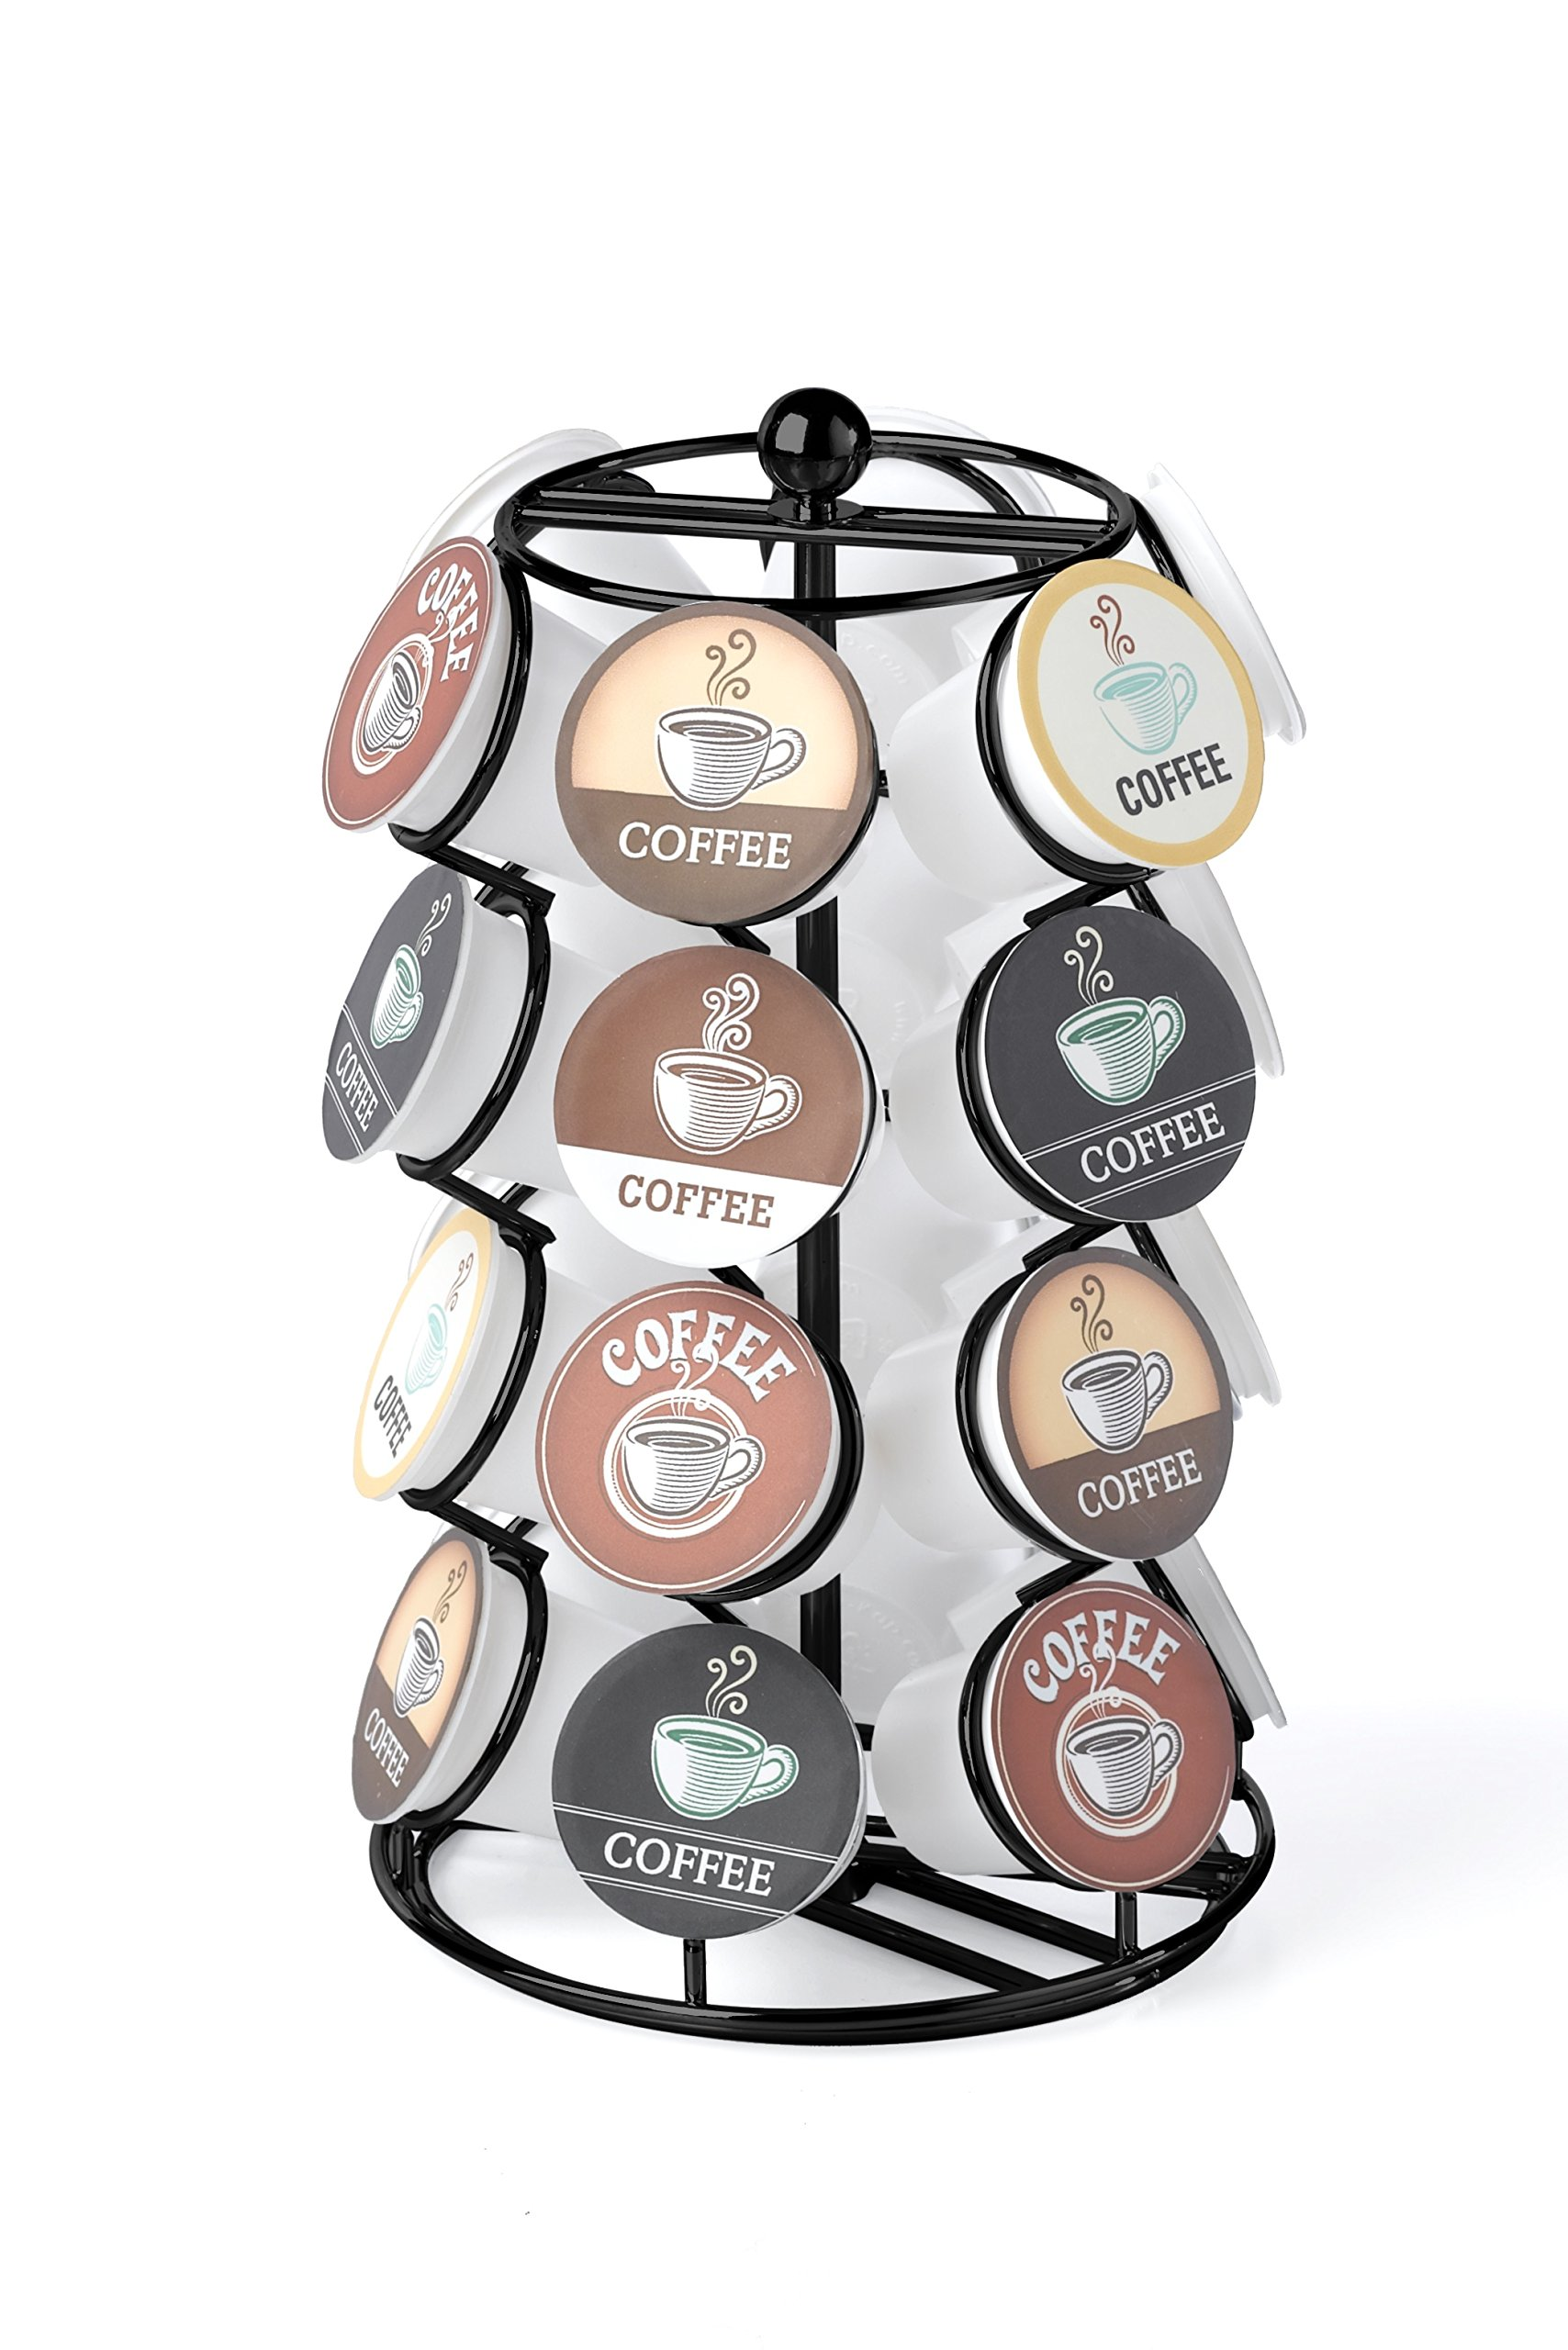 NIFTY 5724B Spinning Organizer Compatible